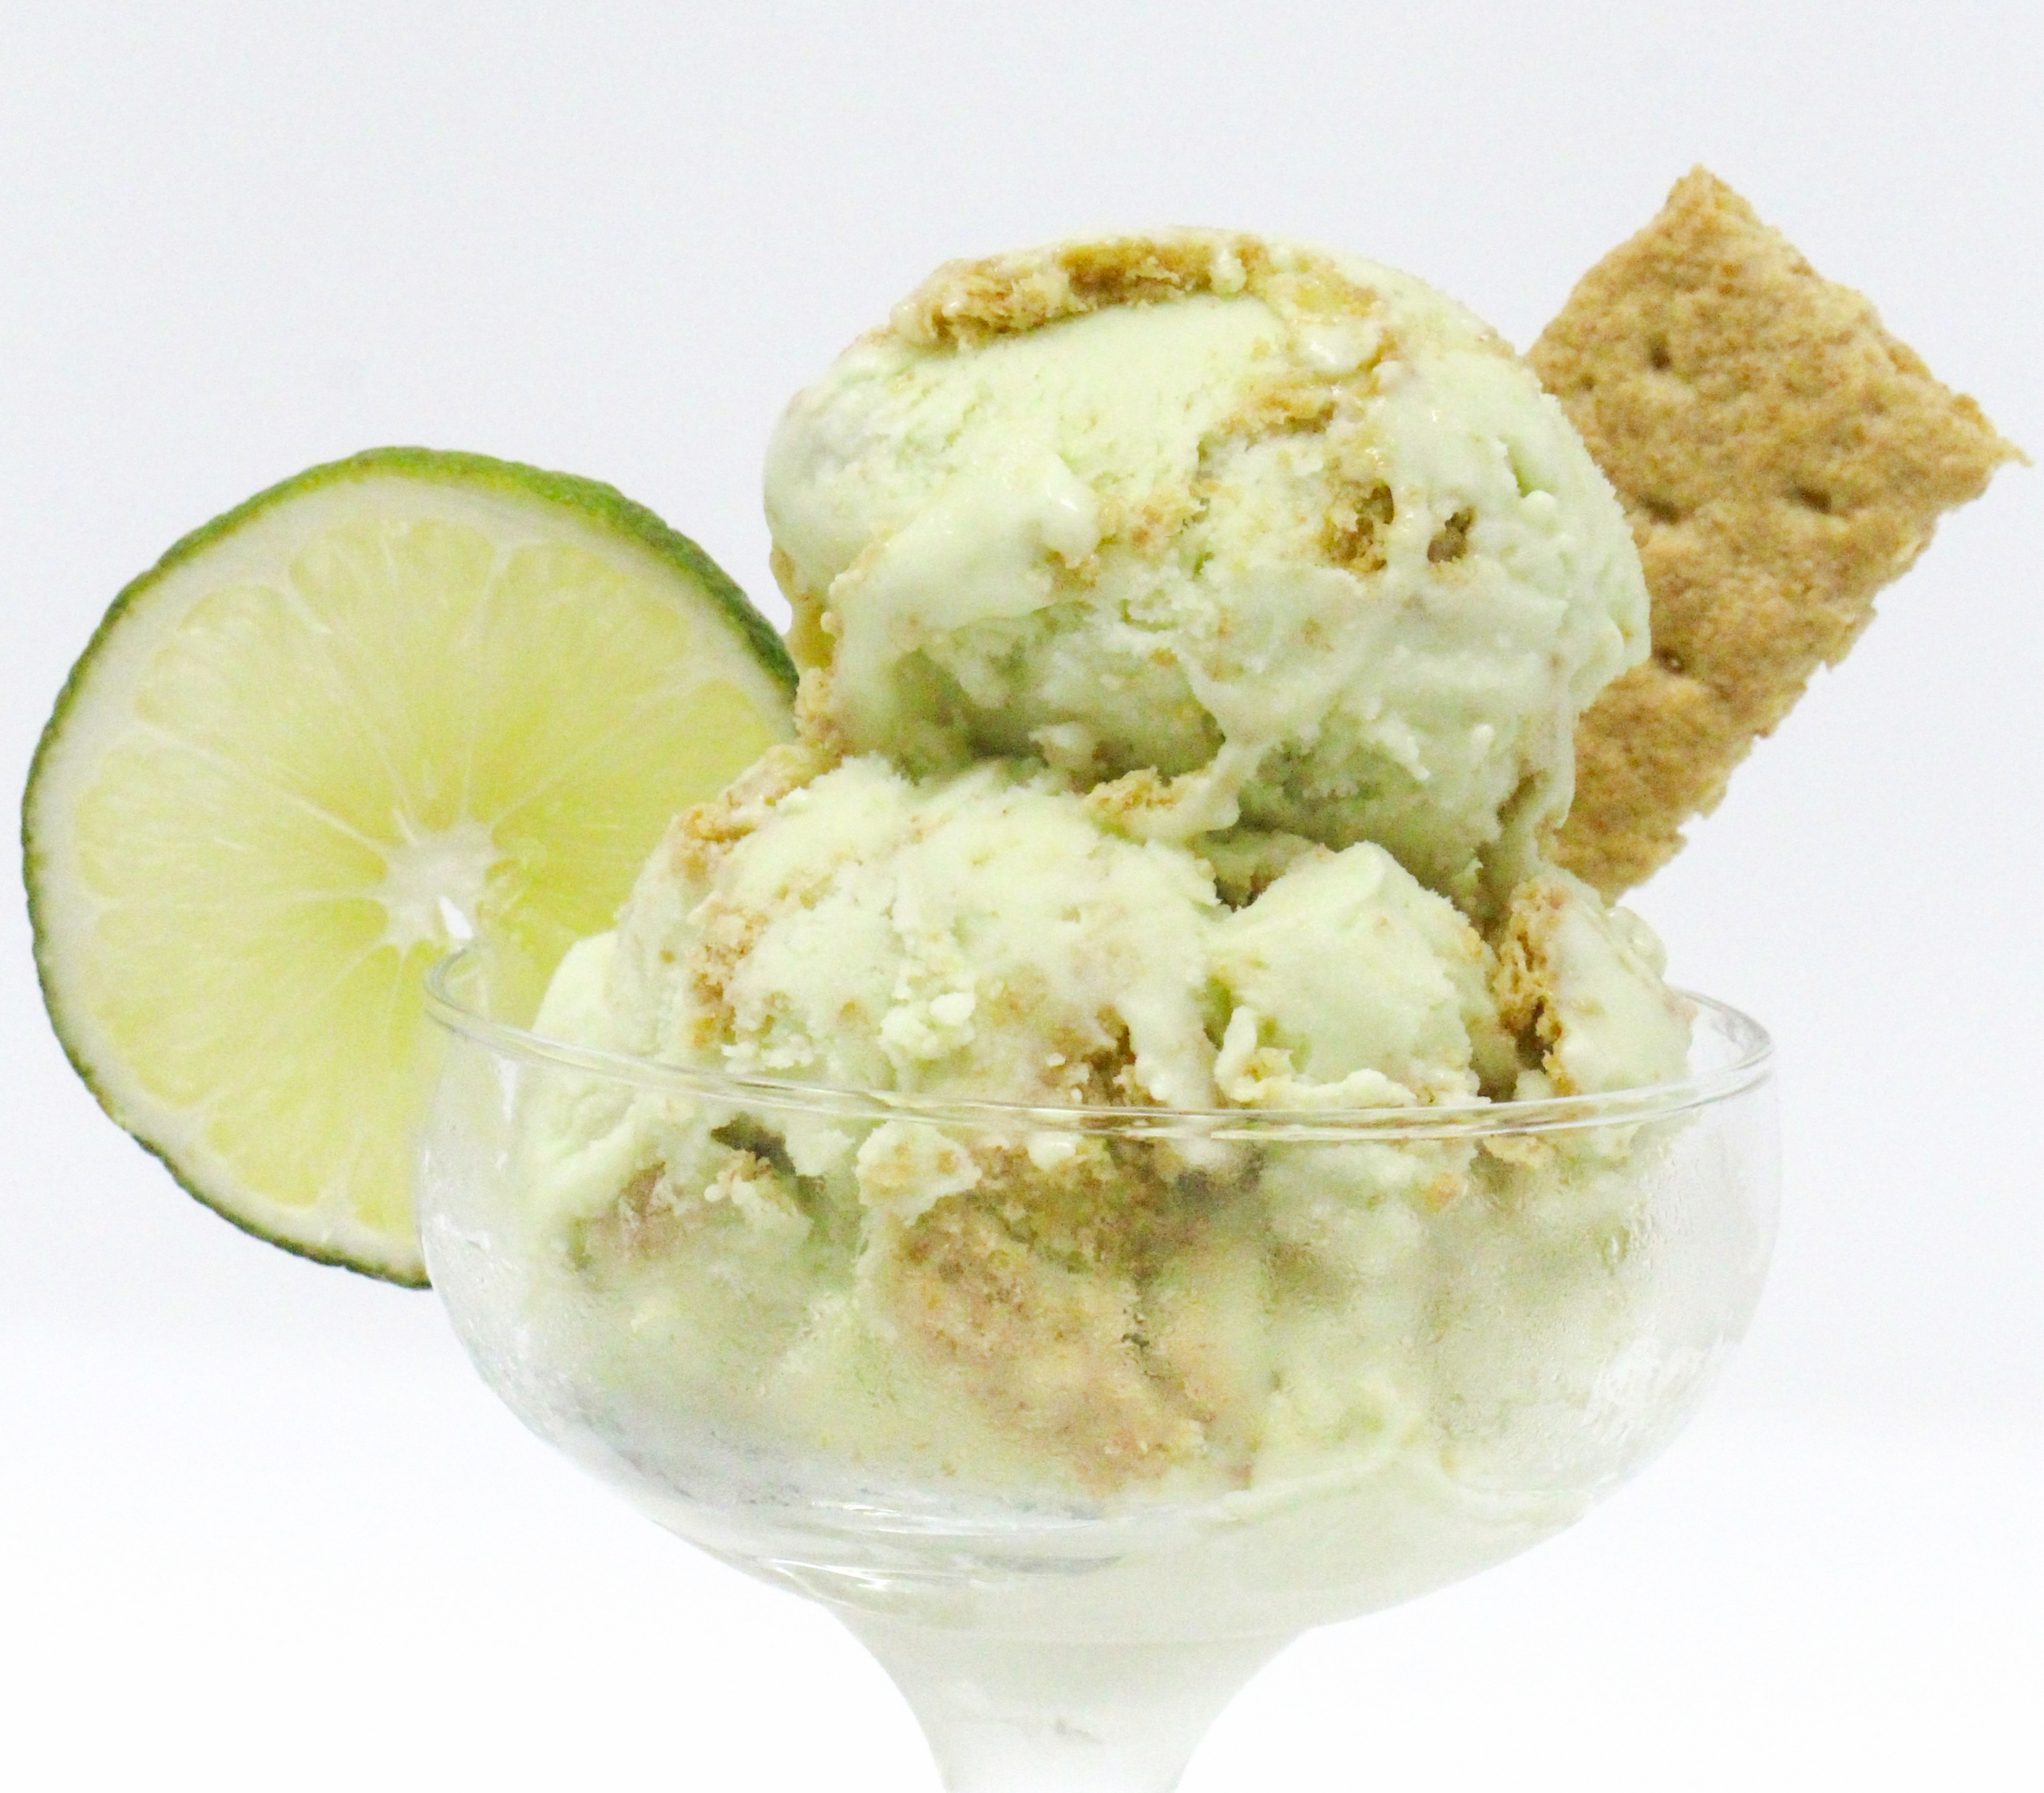 Trinidad's Easy Key Lime Ice Cream is tangy yet sweet, while the bits of graham crackers add a delicious texture to the creamy custard base. Recipe shared with permission granted by Dana Mentink, author of PINT OF NO RETURN.